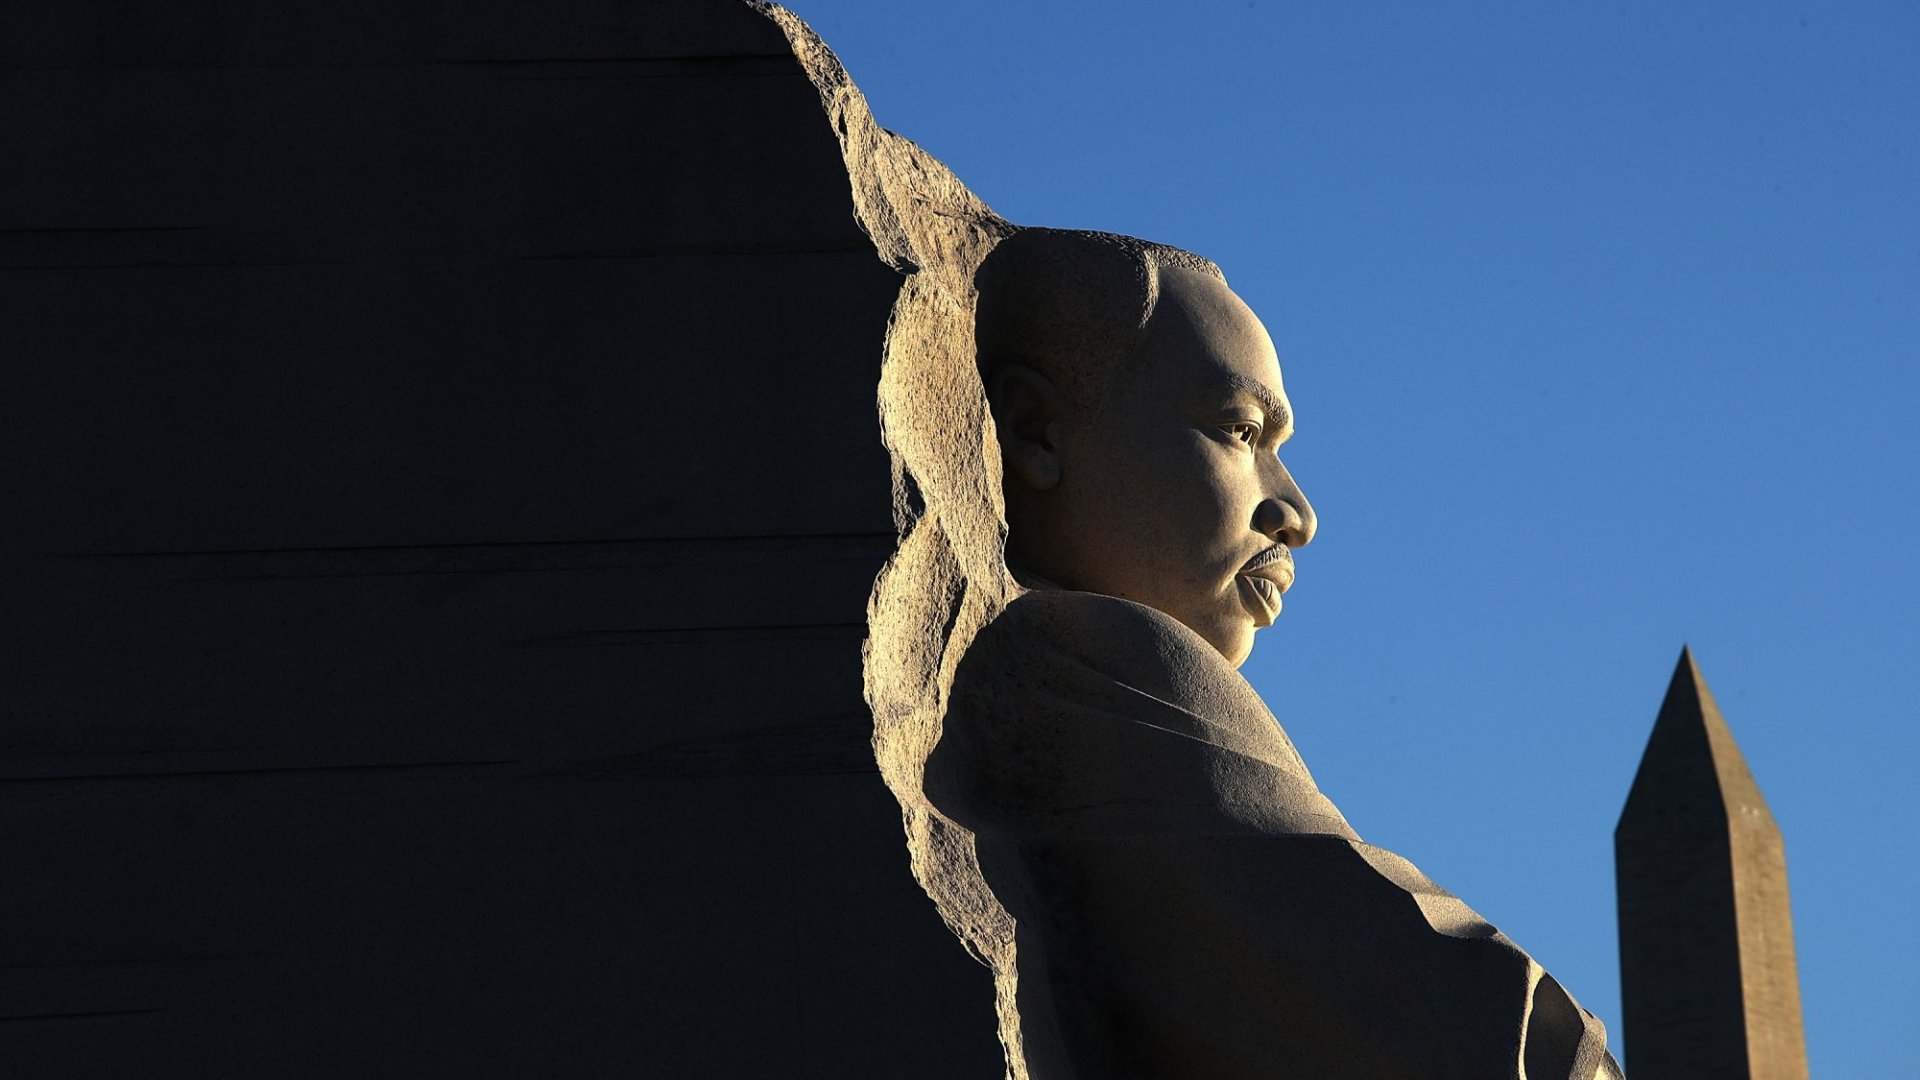 These Are the 15 Crucial Minutes When Martin Luther King Jr. Become a Truly Great Leader